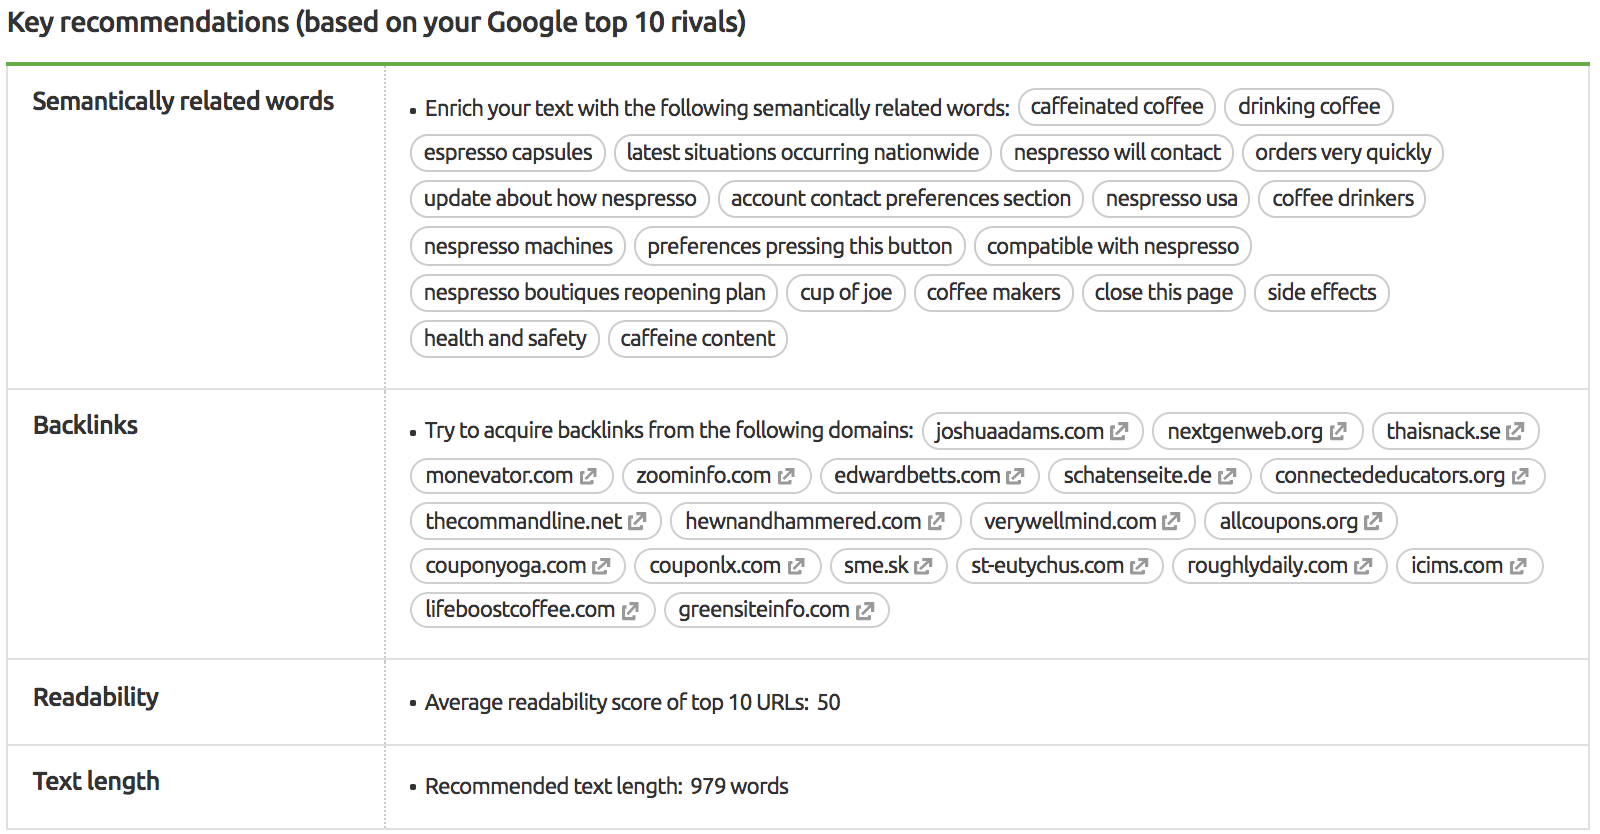 SEO Content Template: recommendations for content based on your Google competitors